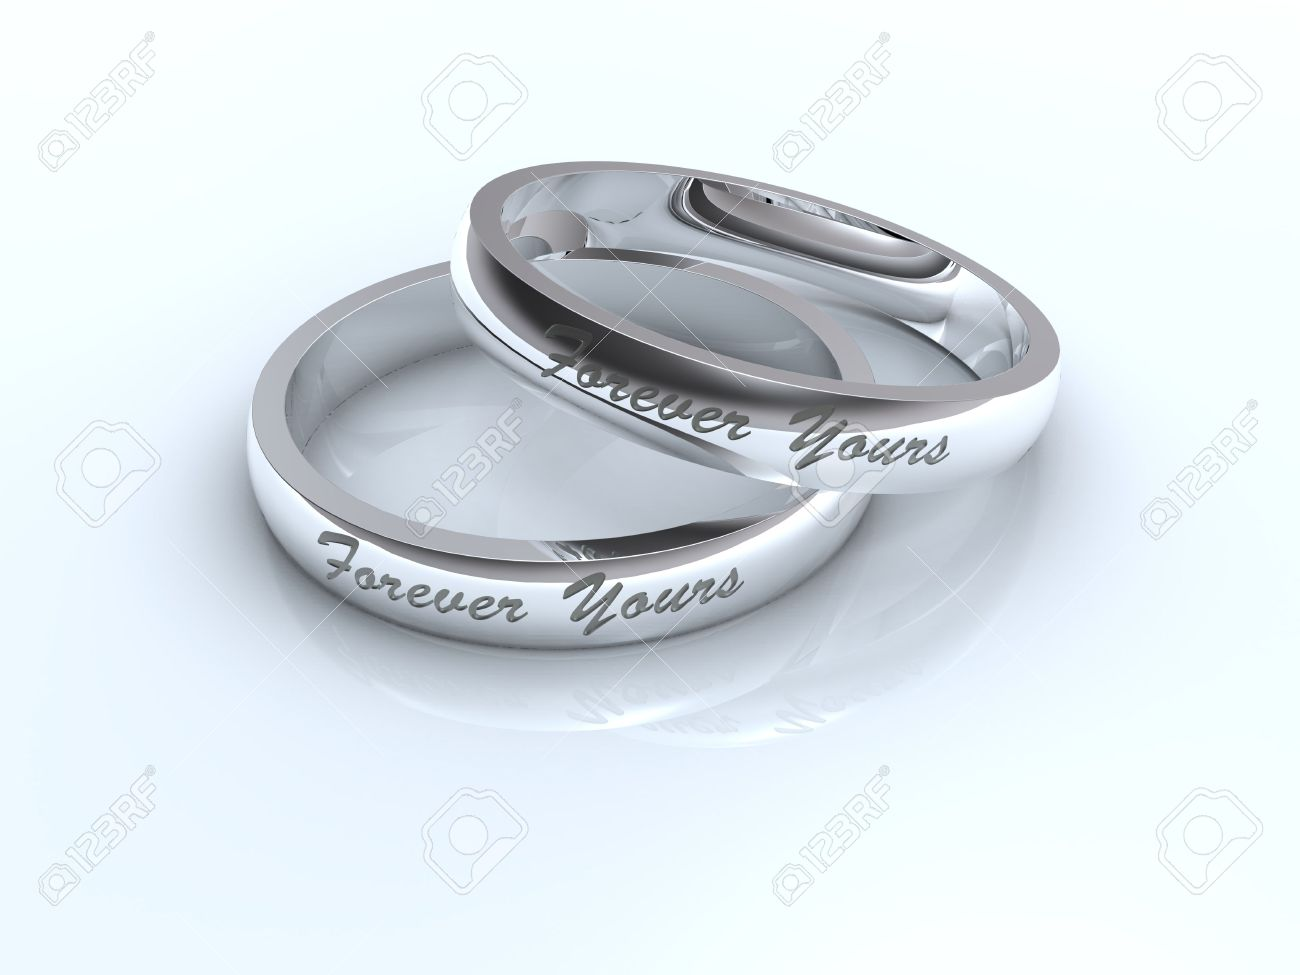 Silver Wedding Rings With Forever Yours Inscription Stock Photo